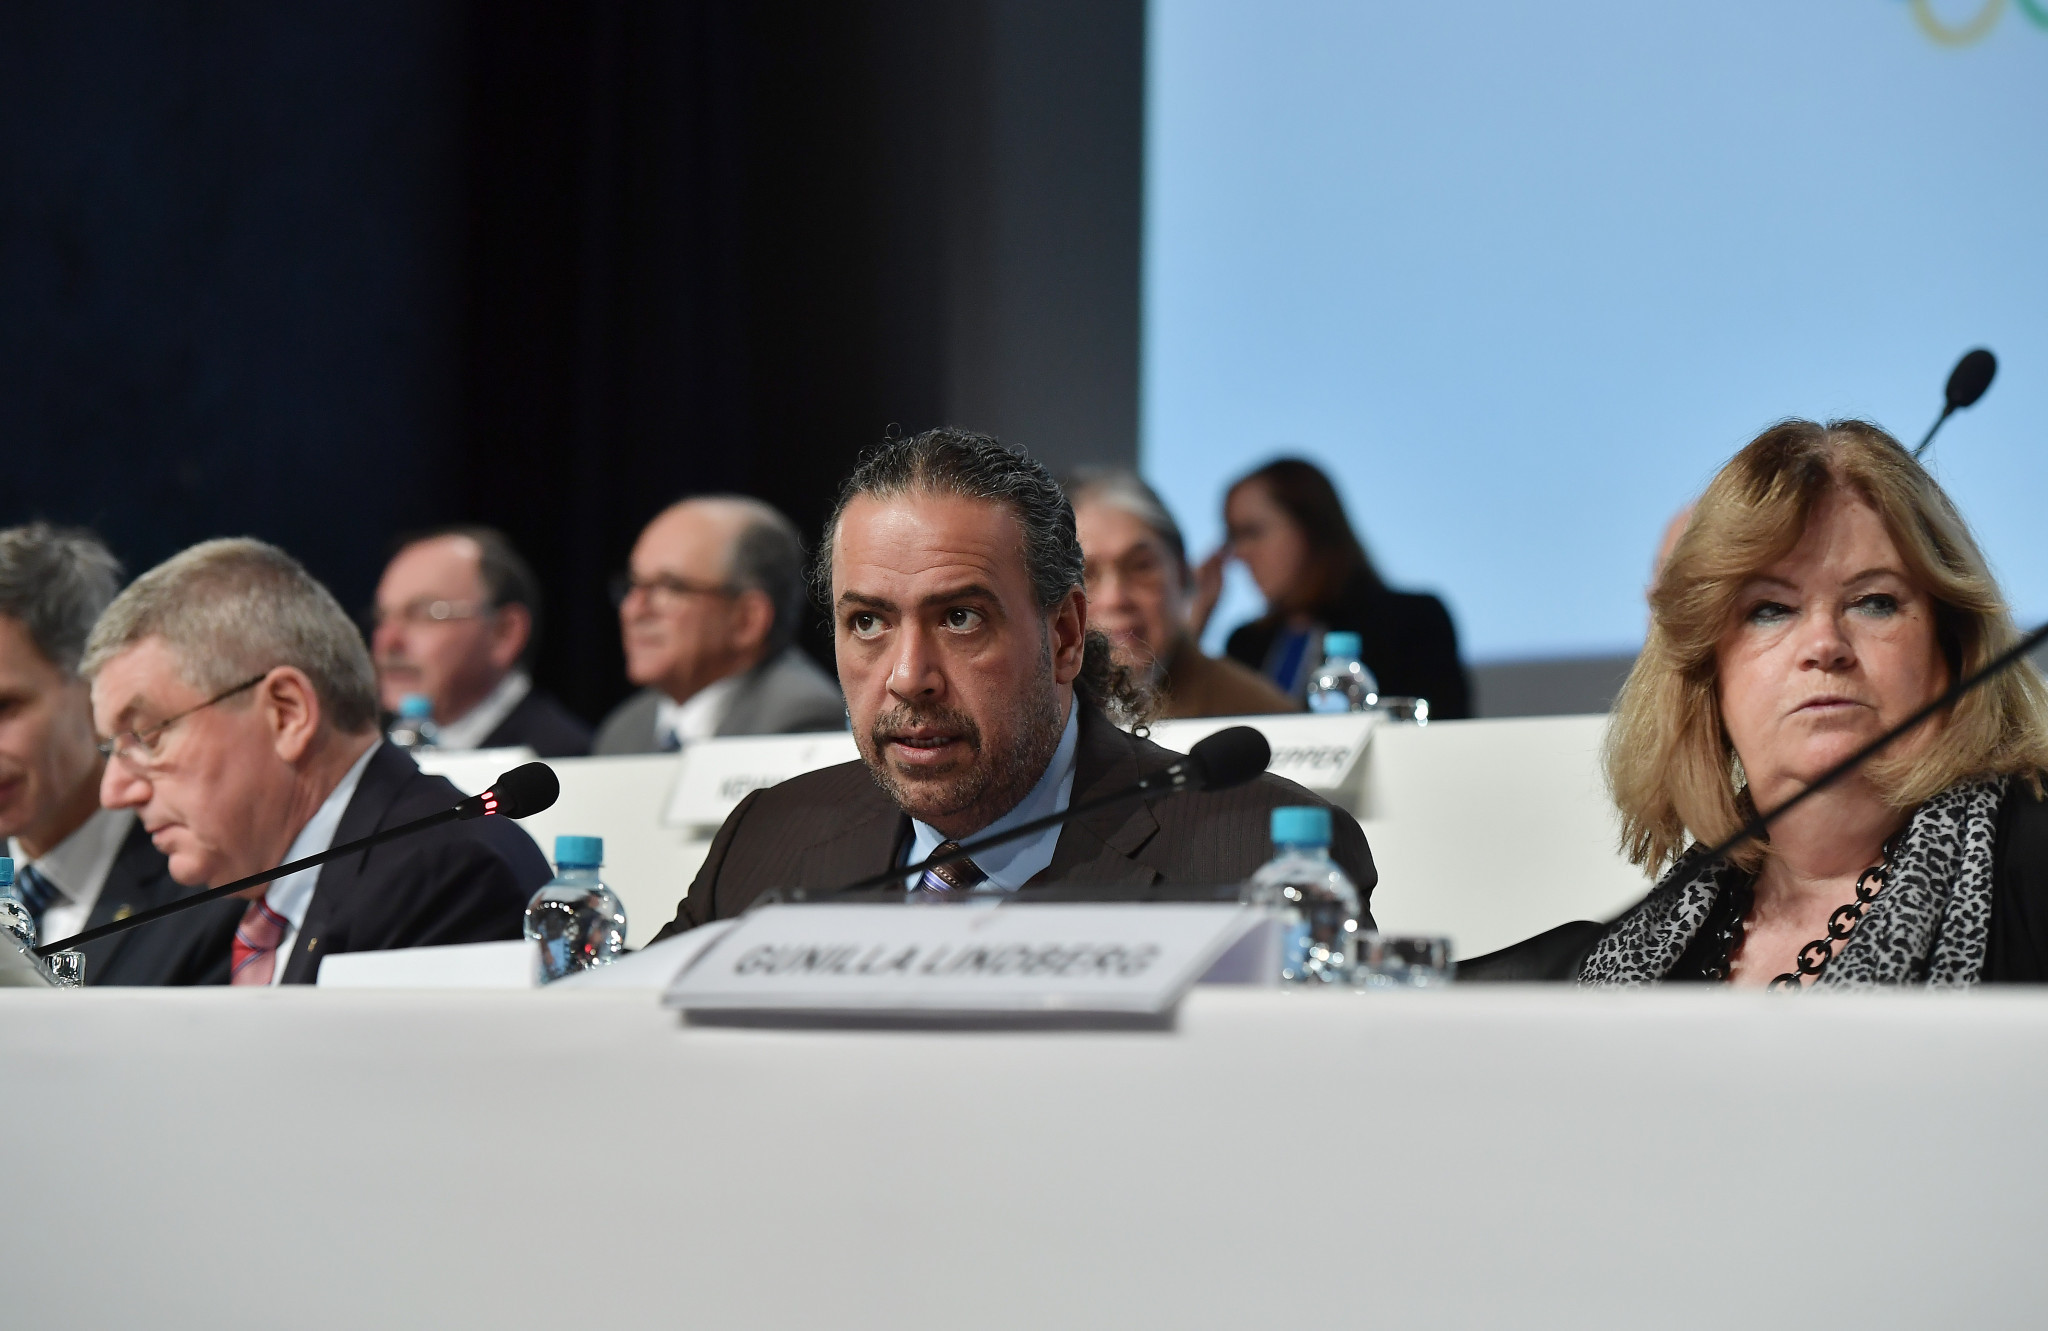 The ANOC resolution was proposed during a meeting chaired by Sheikh Ahmad Al-Fahad Al-Sabah, centre ©Getty Images